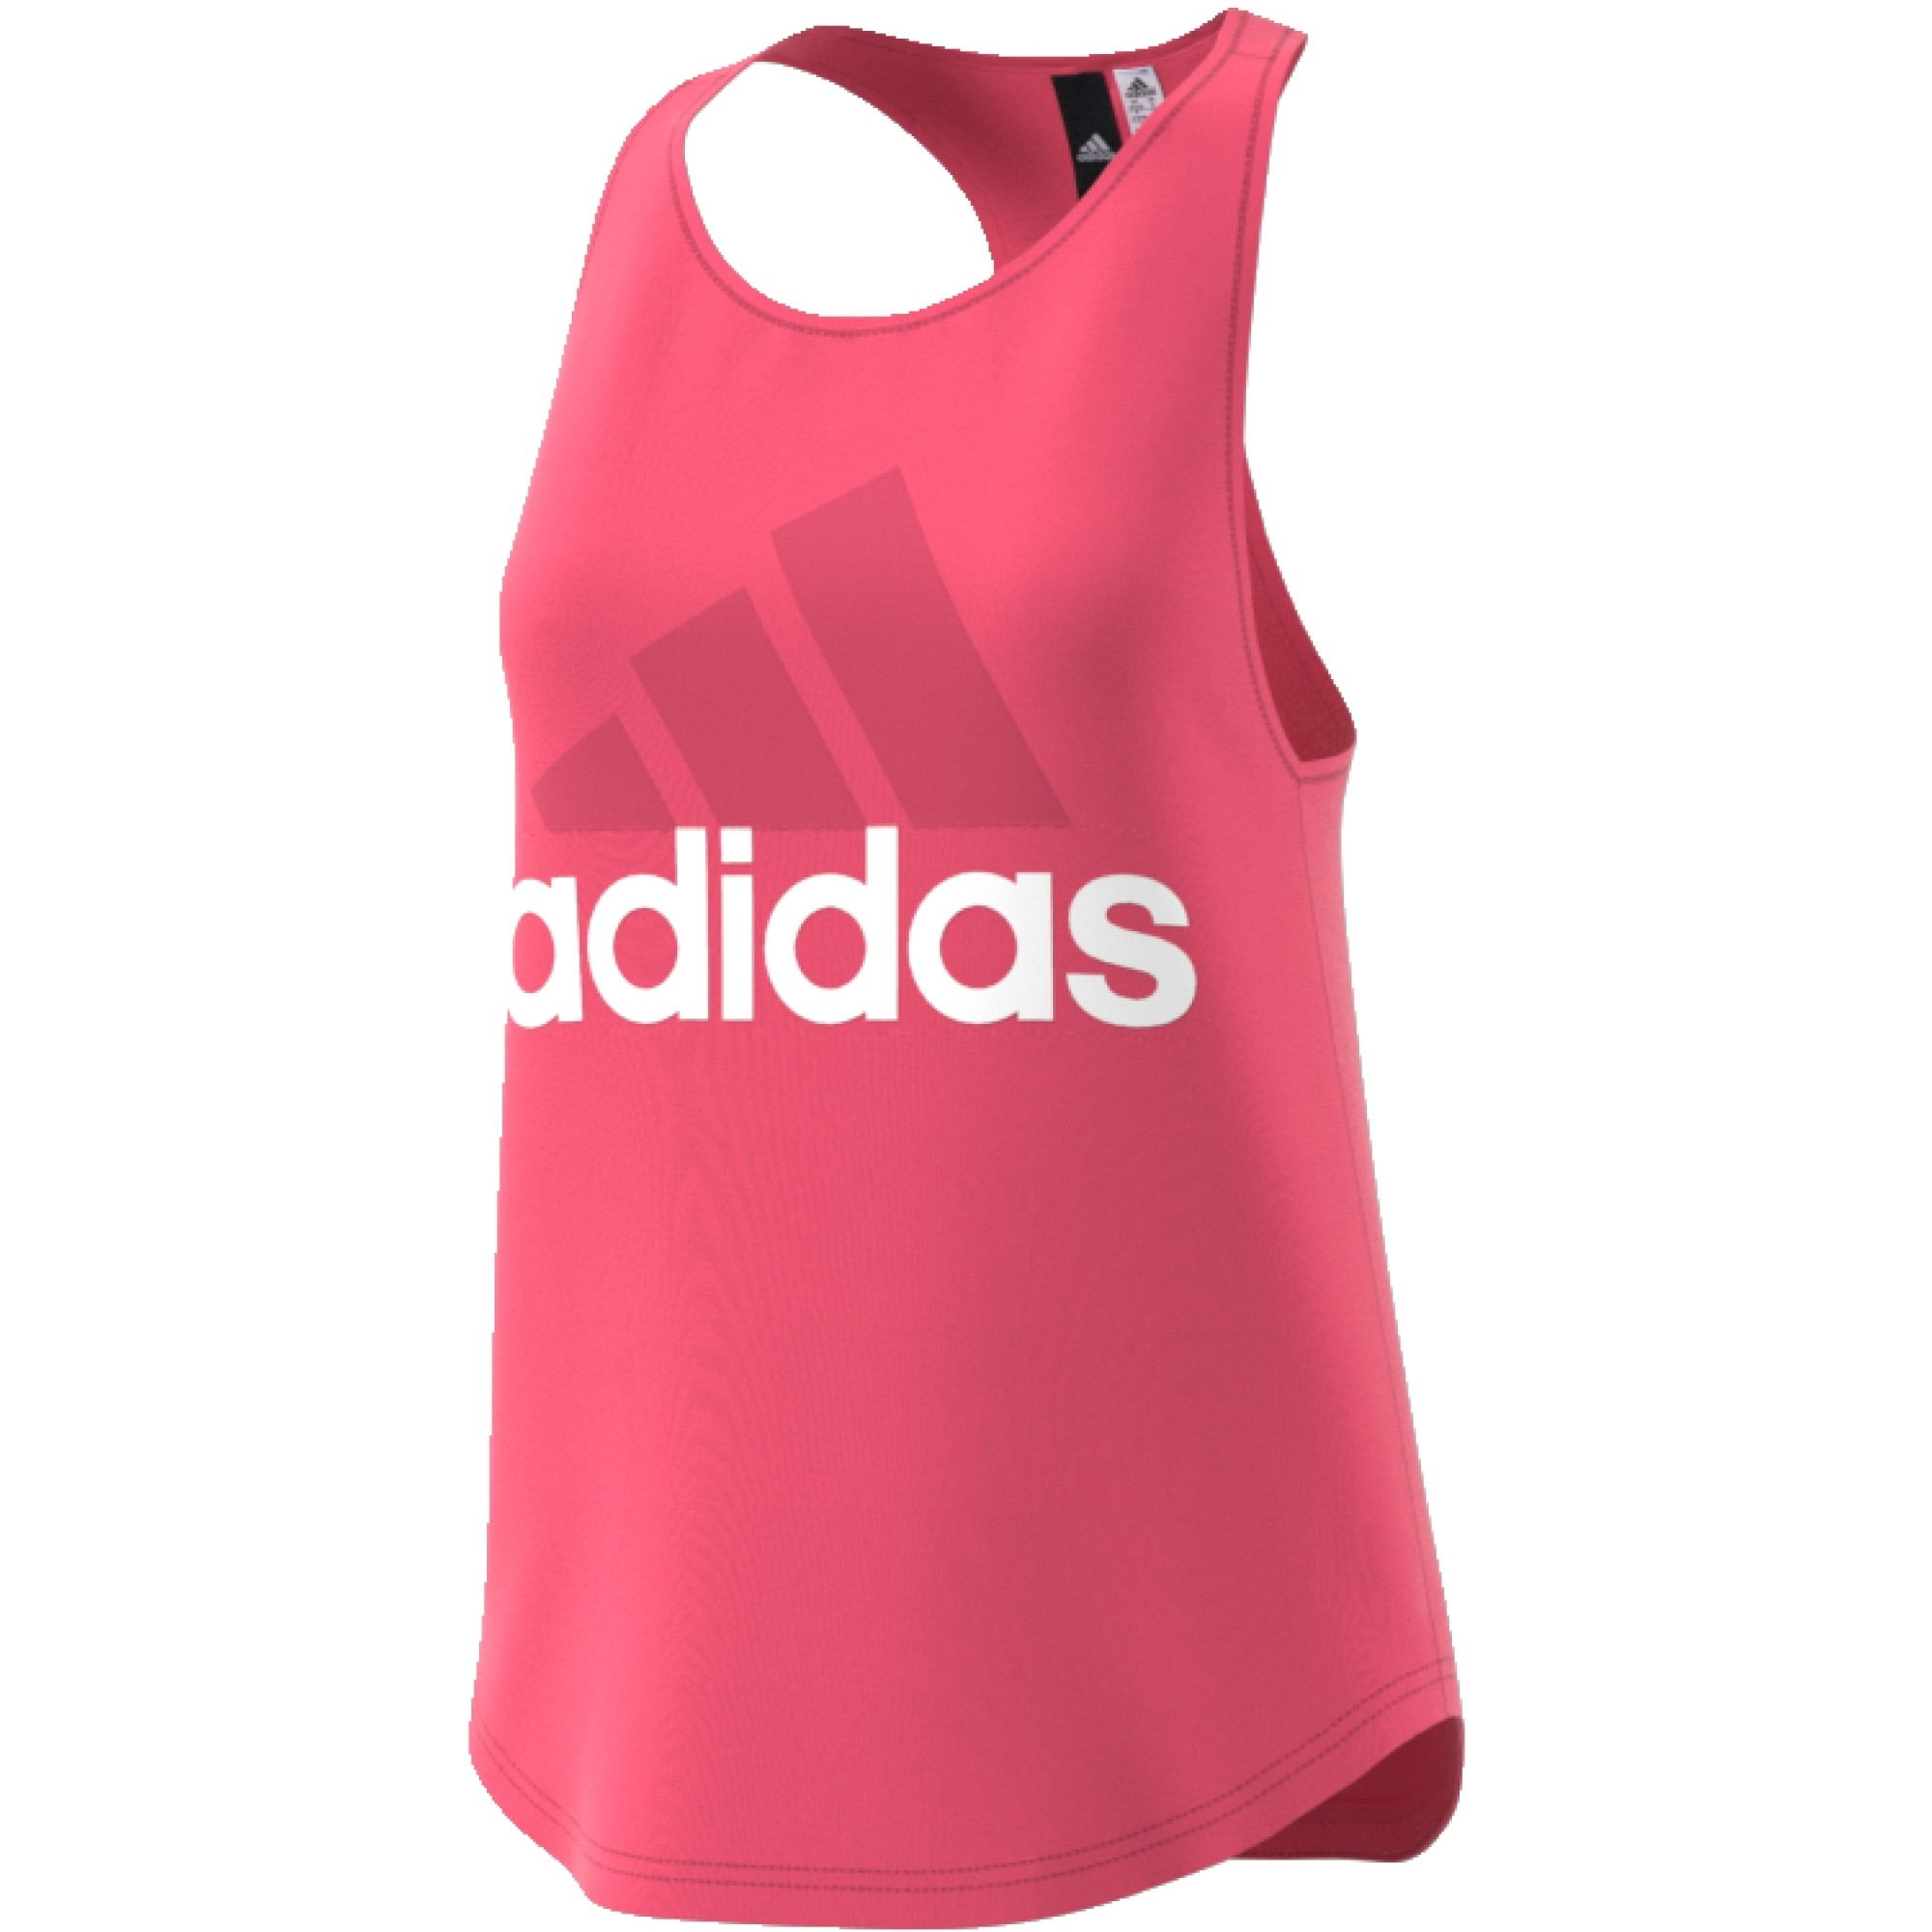 adidas Essentials Linear Loose Tank - Running tops for Women - Pink ... e1cad55a0